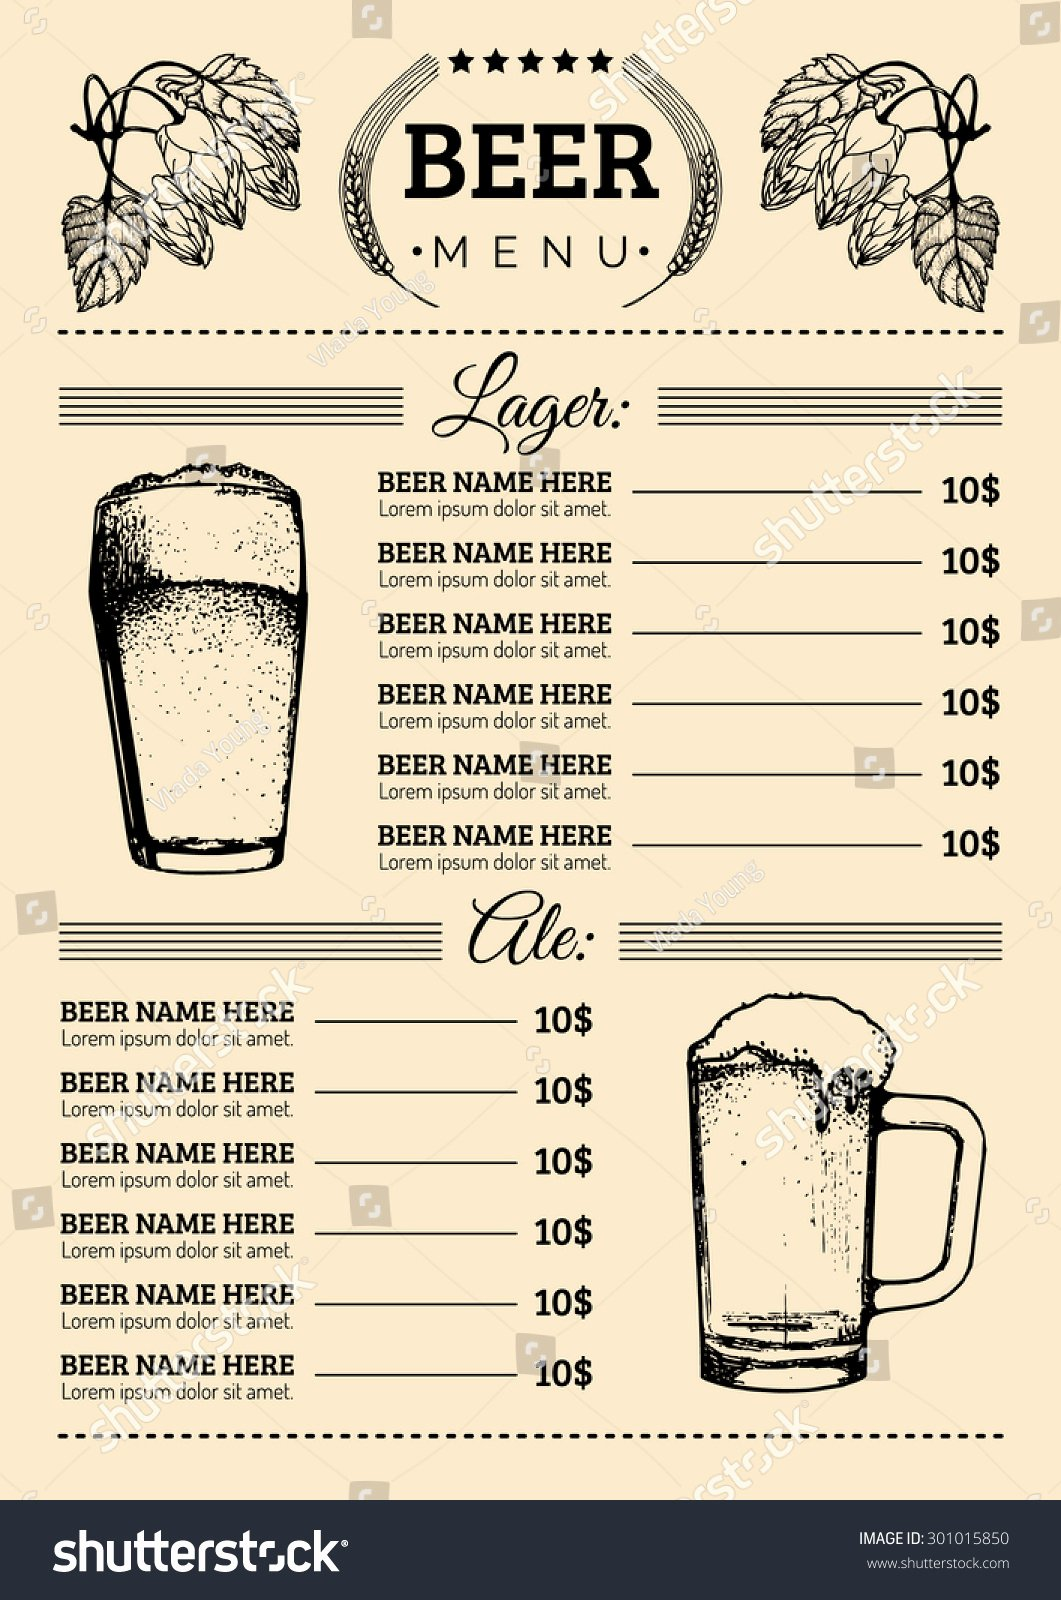 Free Beer Menu Template Beautiful Beer Menu Design Template Vector Bar Stock Vector